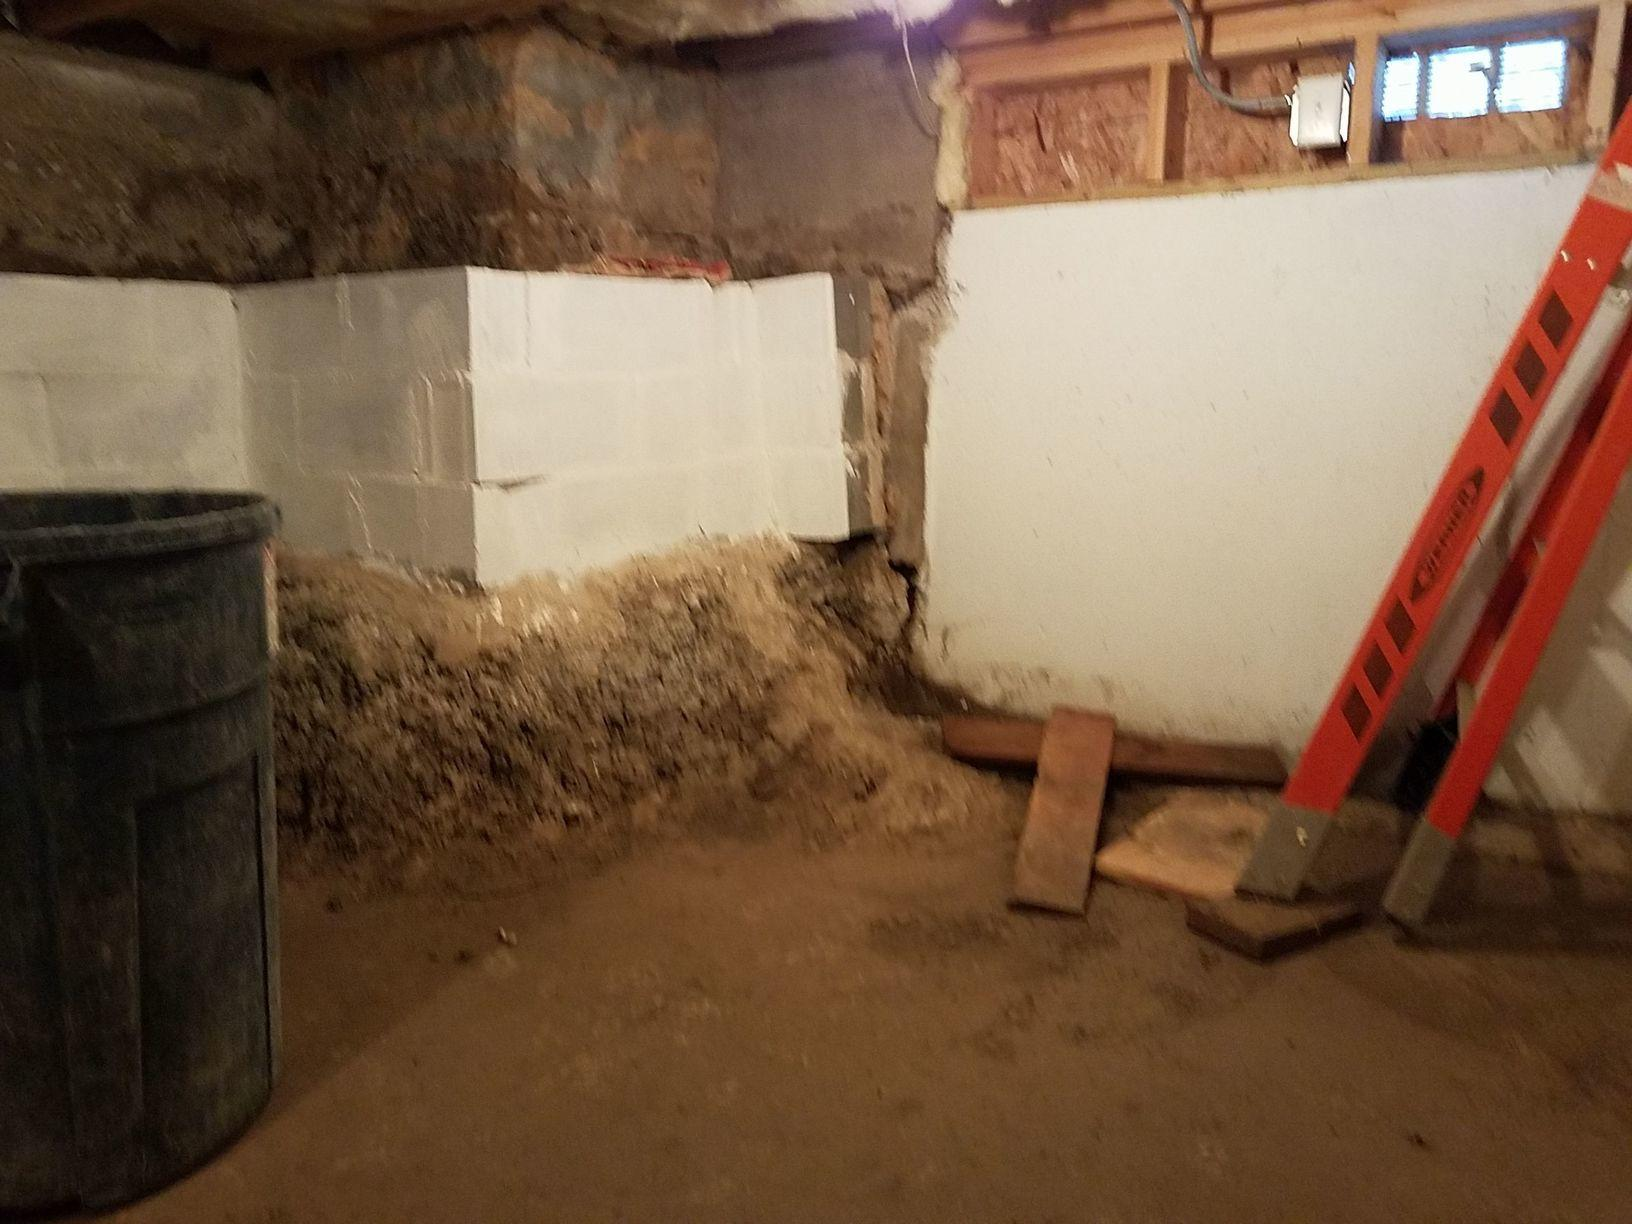 Before the basement and crawlspace were exposed and wet.